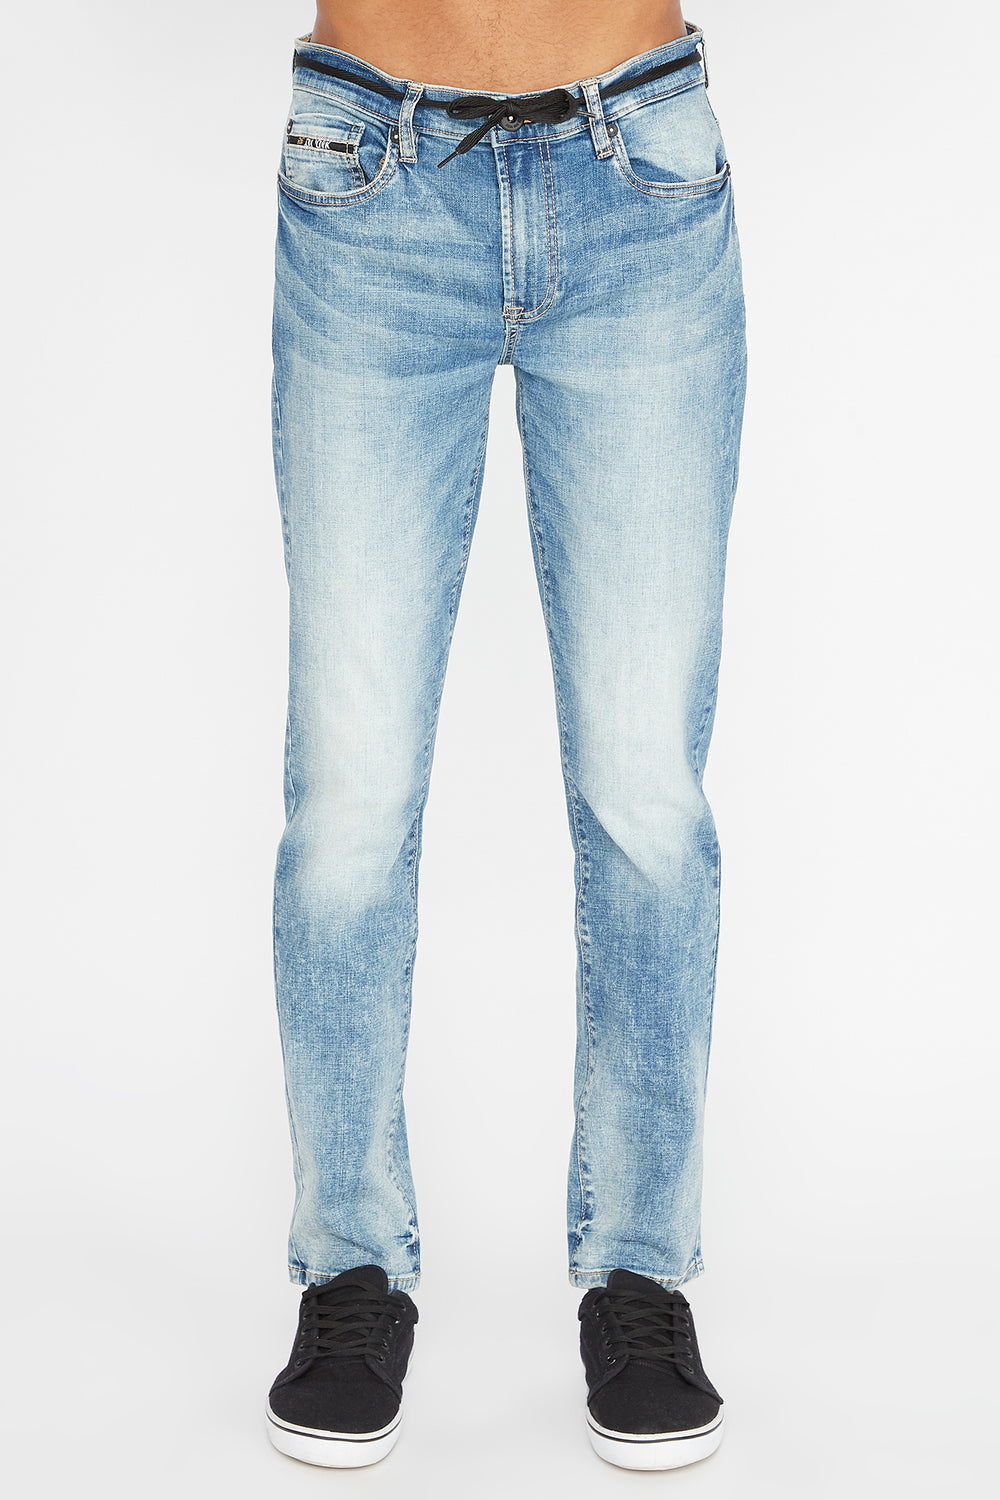 Jean Filiforme Zoo York Homme Bleu pale